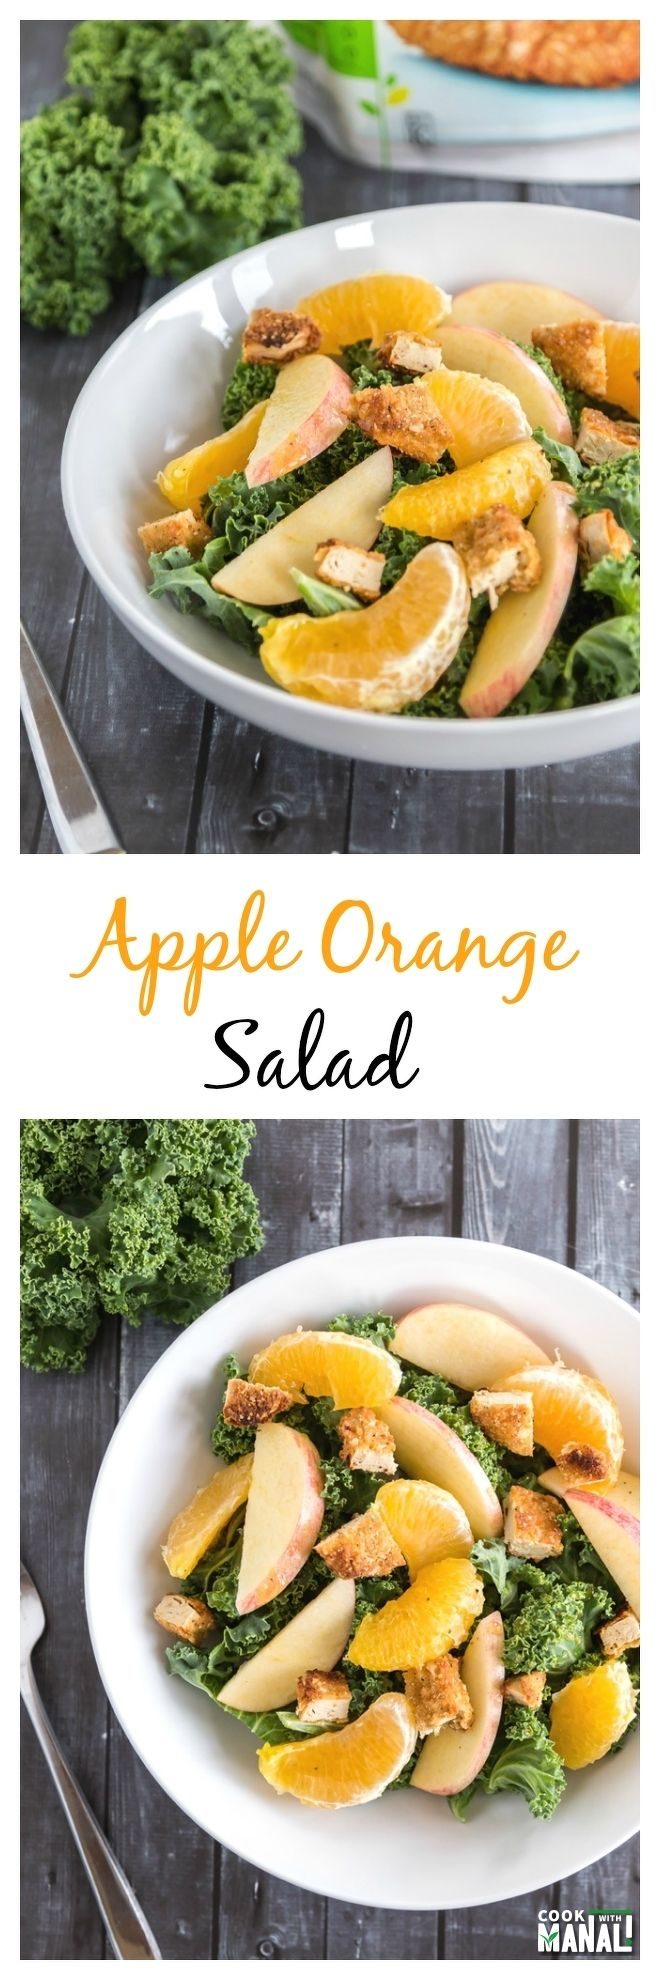 Apple Orange Salad collage